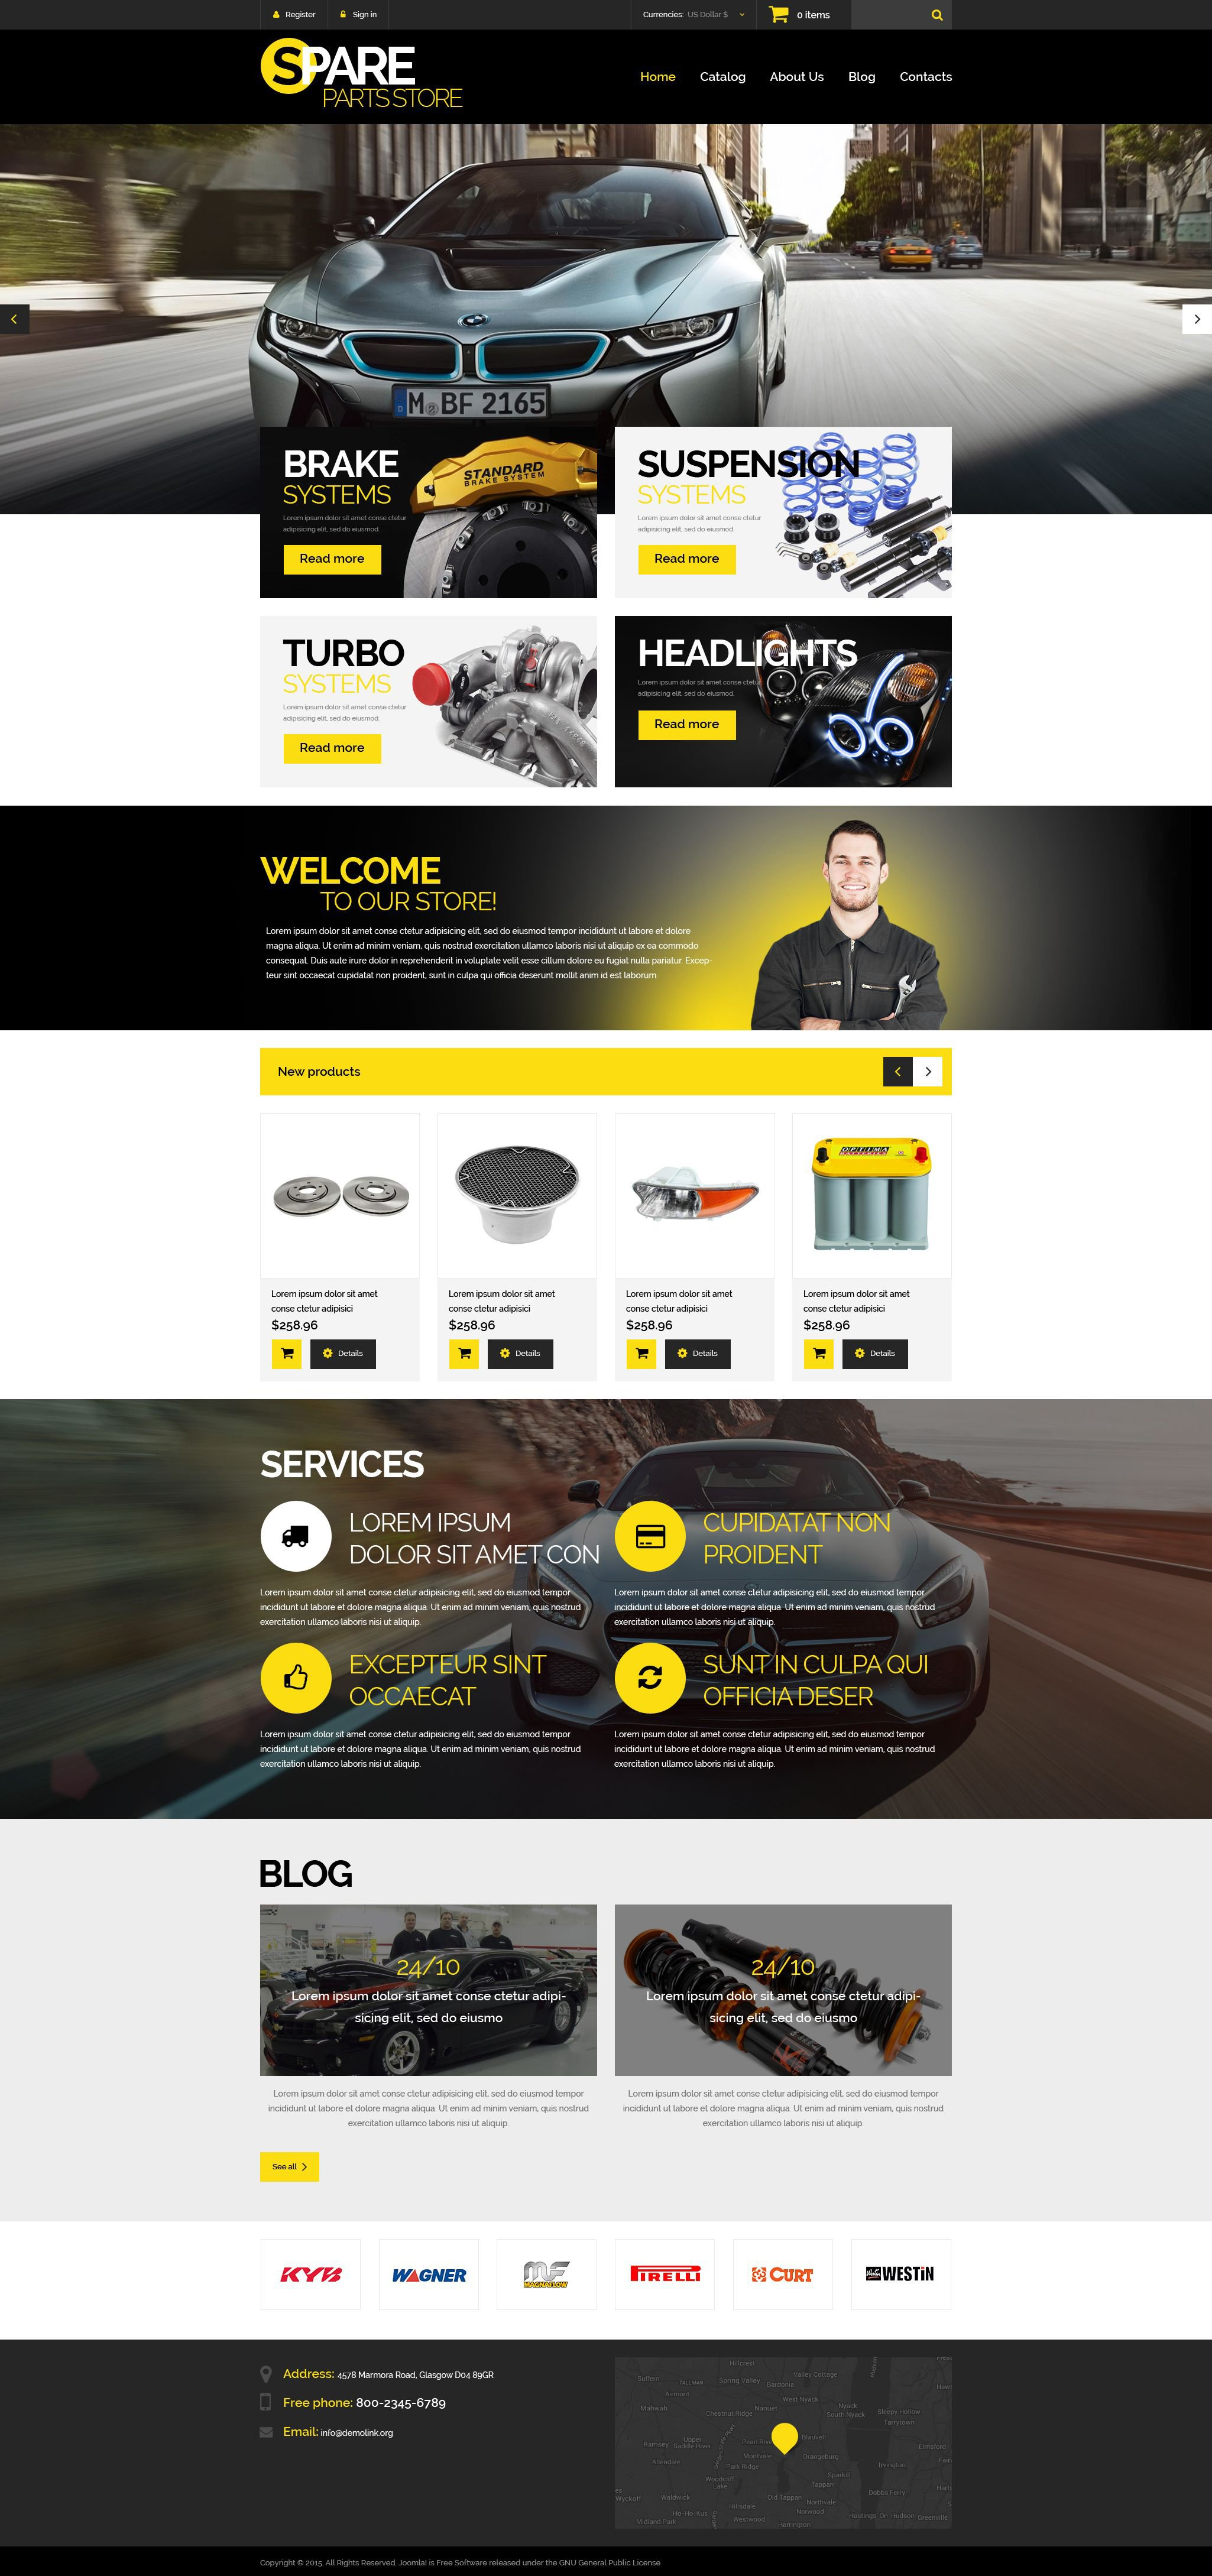 The Spare Parts VirtueMart Design 53698, one of the best VirtueMart templates of its kind (cars, most popular), also known as spare parts VirtueMart template, shop VirtueMart template, car VirtueMart template, spares VirtueMart template, online products VirtueMart template, air VirtueMart template, freshener VirtueMart template, cooling VirtueMart template, headliners VirtueMart template, battery VirtueMart template, accessories VirtueMart template, dashboard VirtueMart template, cover VirtueMart template, lighting VirtueMart template, bug VirtueMart template, shield VirtueMart template, decals VirtueMart template, racing VirtueMart template, novelties VirtueMart template, bulk VirtueMart template, hose VirtueMart template, electrical VirtueMart template, rear VirtueMart template, deck VirtueMart template, cover VirtueMart template, car VirtueMart template, covers VirtueMart template, custom VirtueMart template, fit VirtueMart template, electronics VirtueMart template, seat and related with spare parts, shop, car, spares, online products, air, freshener, cooling, headliners, battery, accessories, dashboard, cover, lighting, bug, shield, decals, racing, novelties, bulk, hose, electrical, rear, deck, cover, car, covers, custom, fit, electronics, seat, etc.